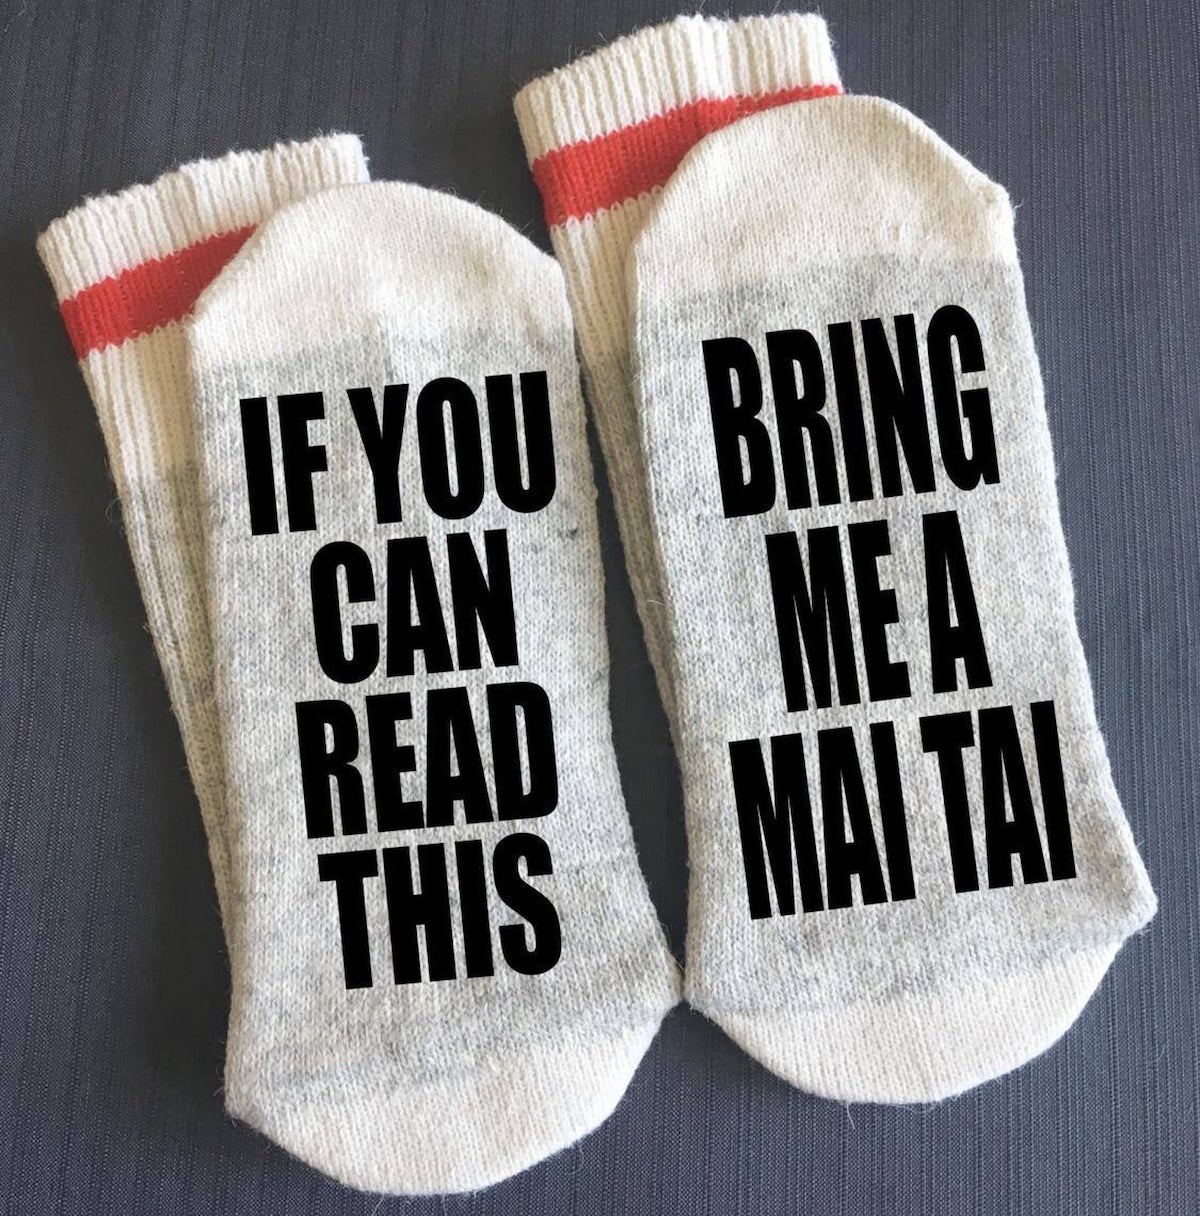 cozy socks that read on the bottom If you can read this, bring me a mai tai